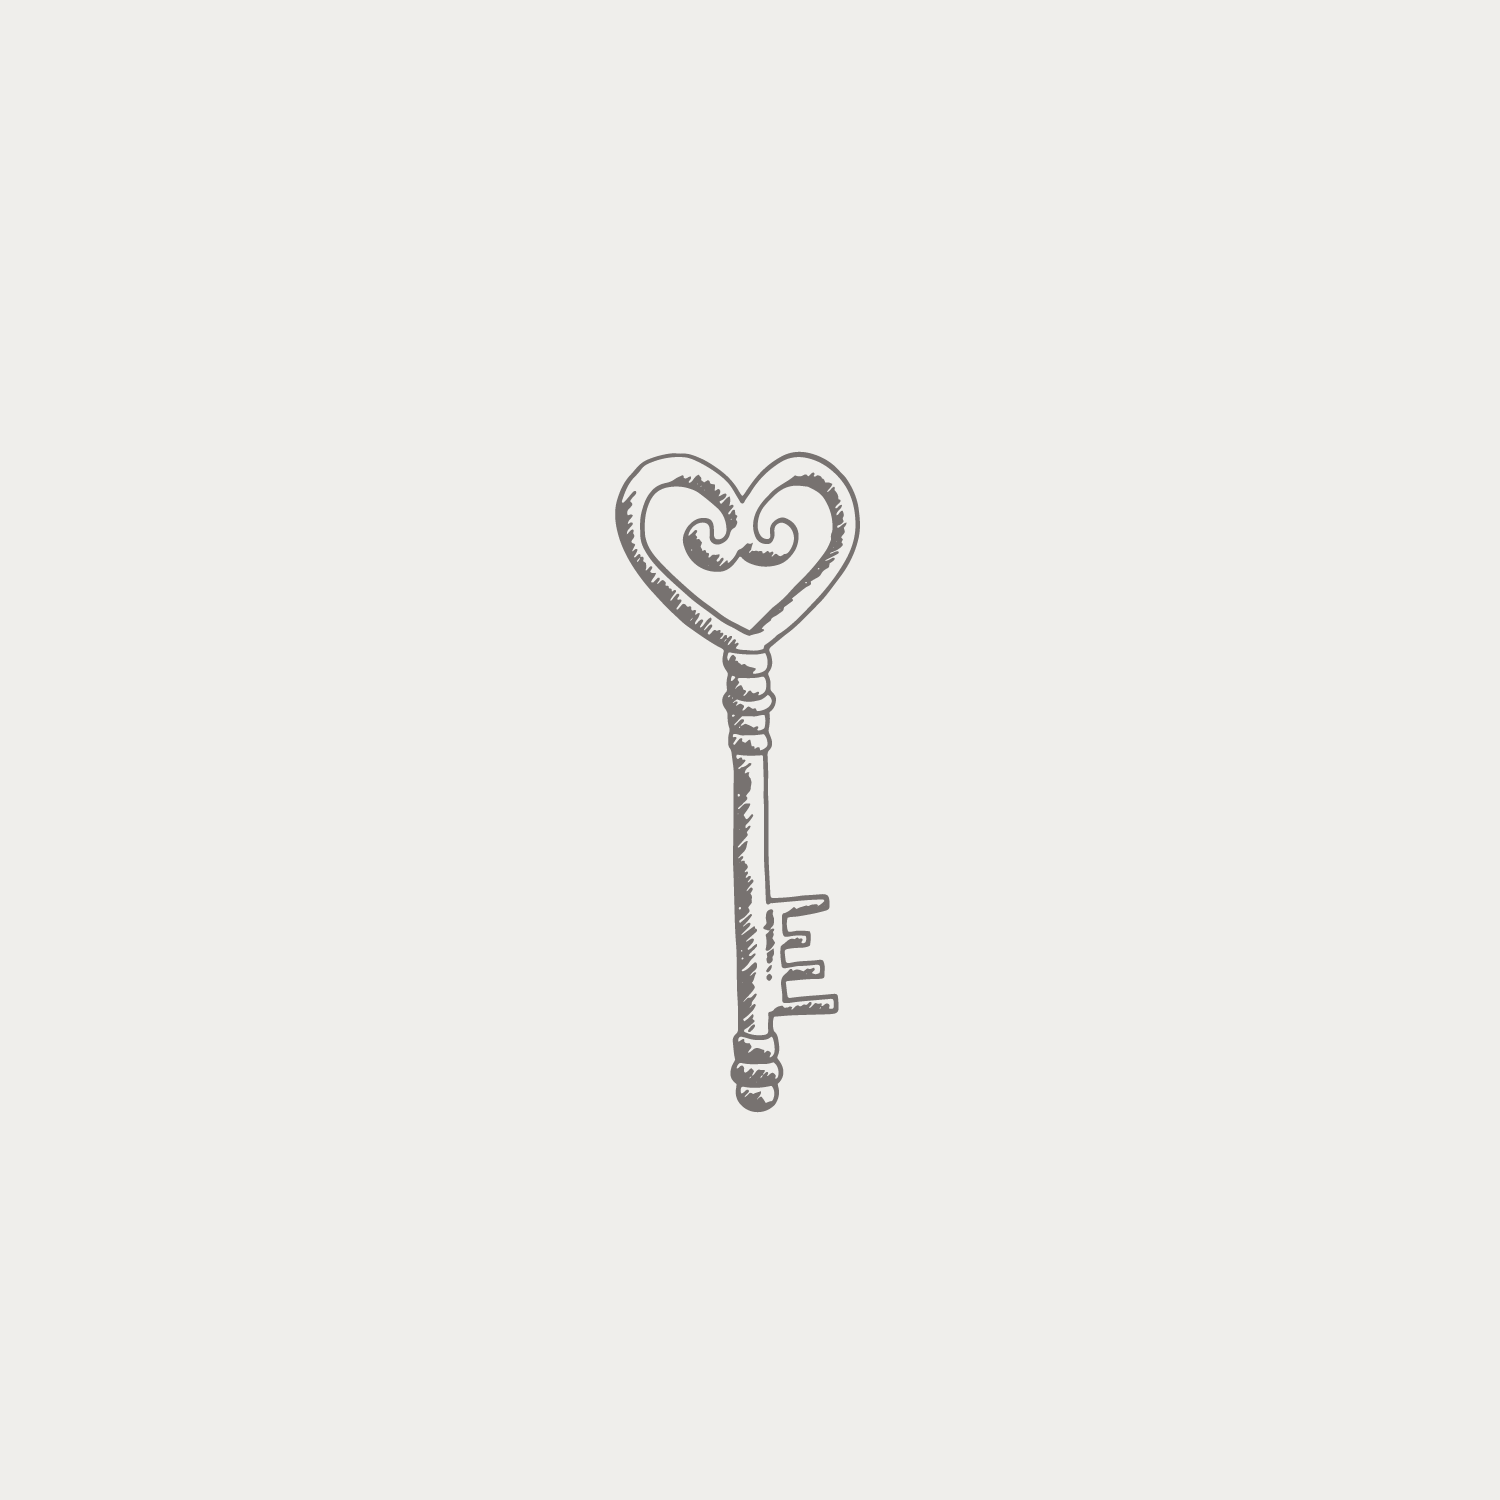 Magic Key illustration #the100dayproject by Bea & Bloom Creative Design Studio